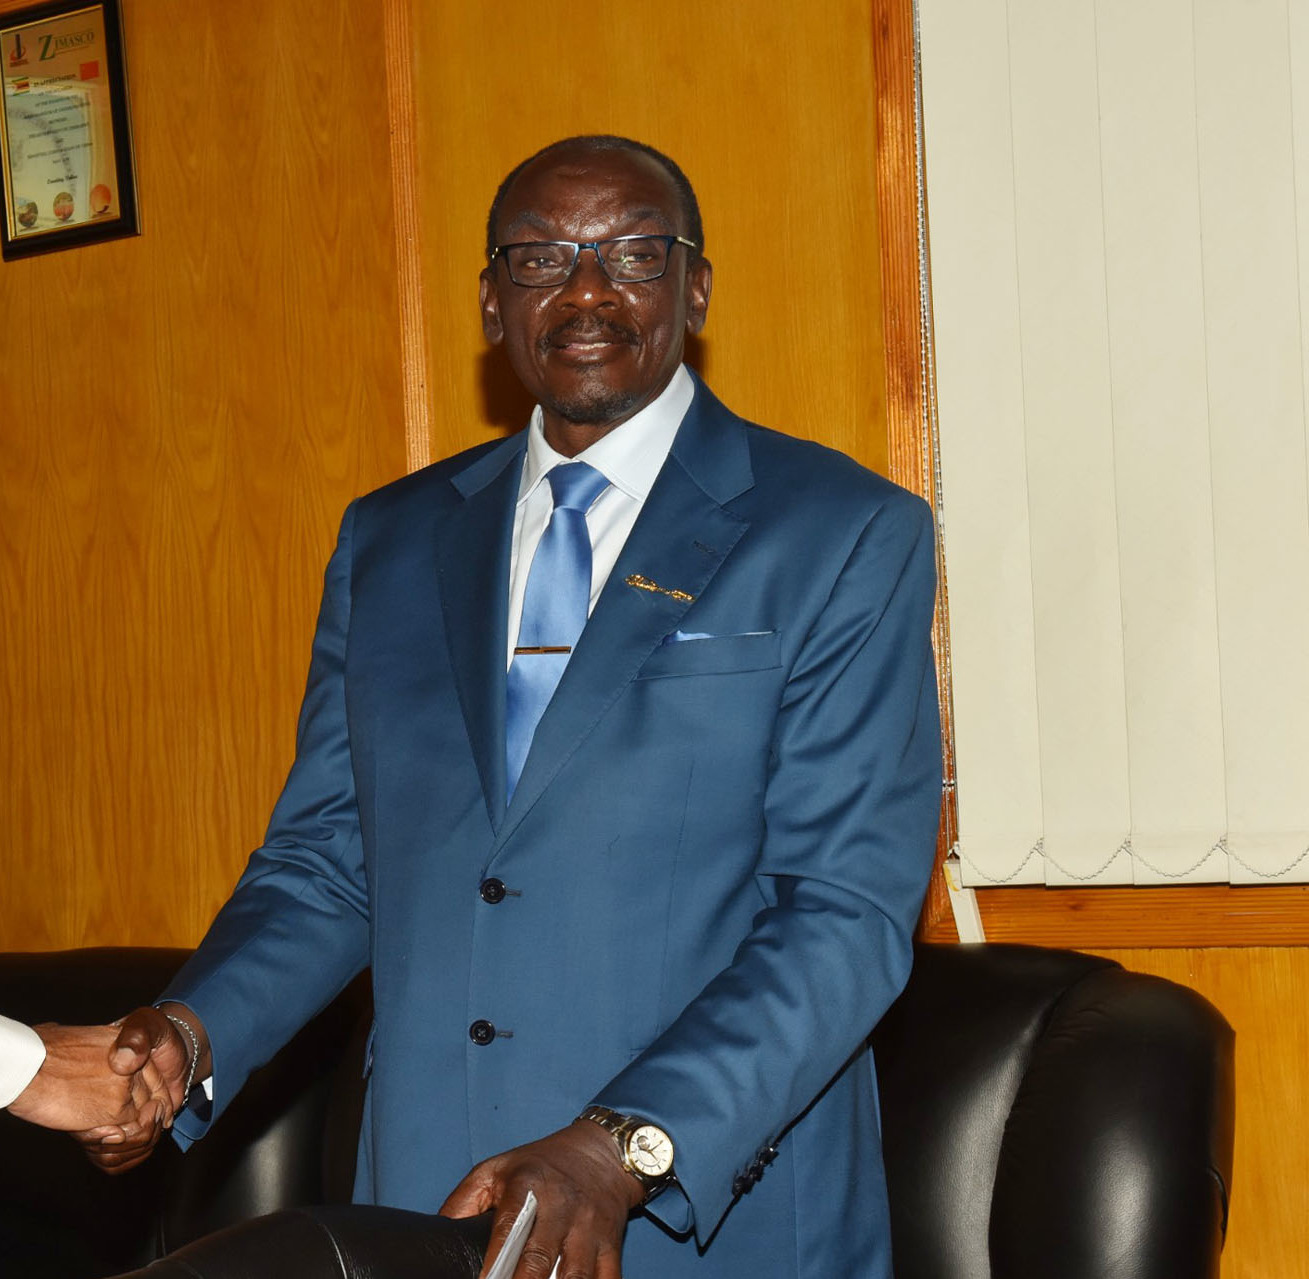 Vice_President_of_Zimbabwe_Mr._Kembo_Mohadi_at_the_Munhumutapa_Building_in_Harare_Zimbabwe_on_November_03_2018_cropped